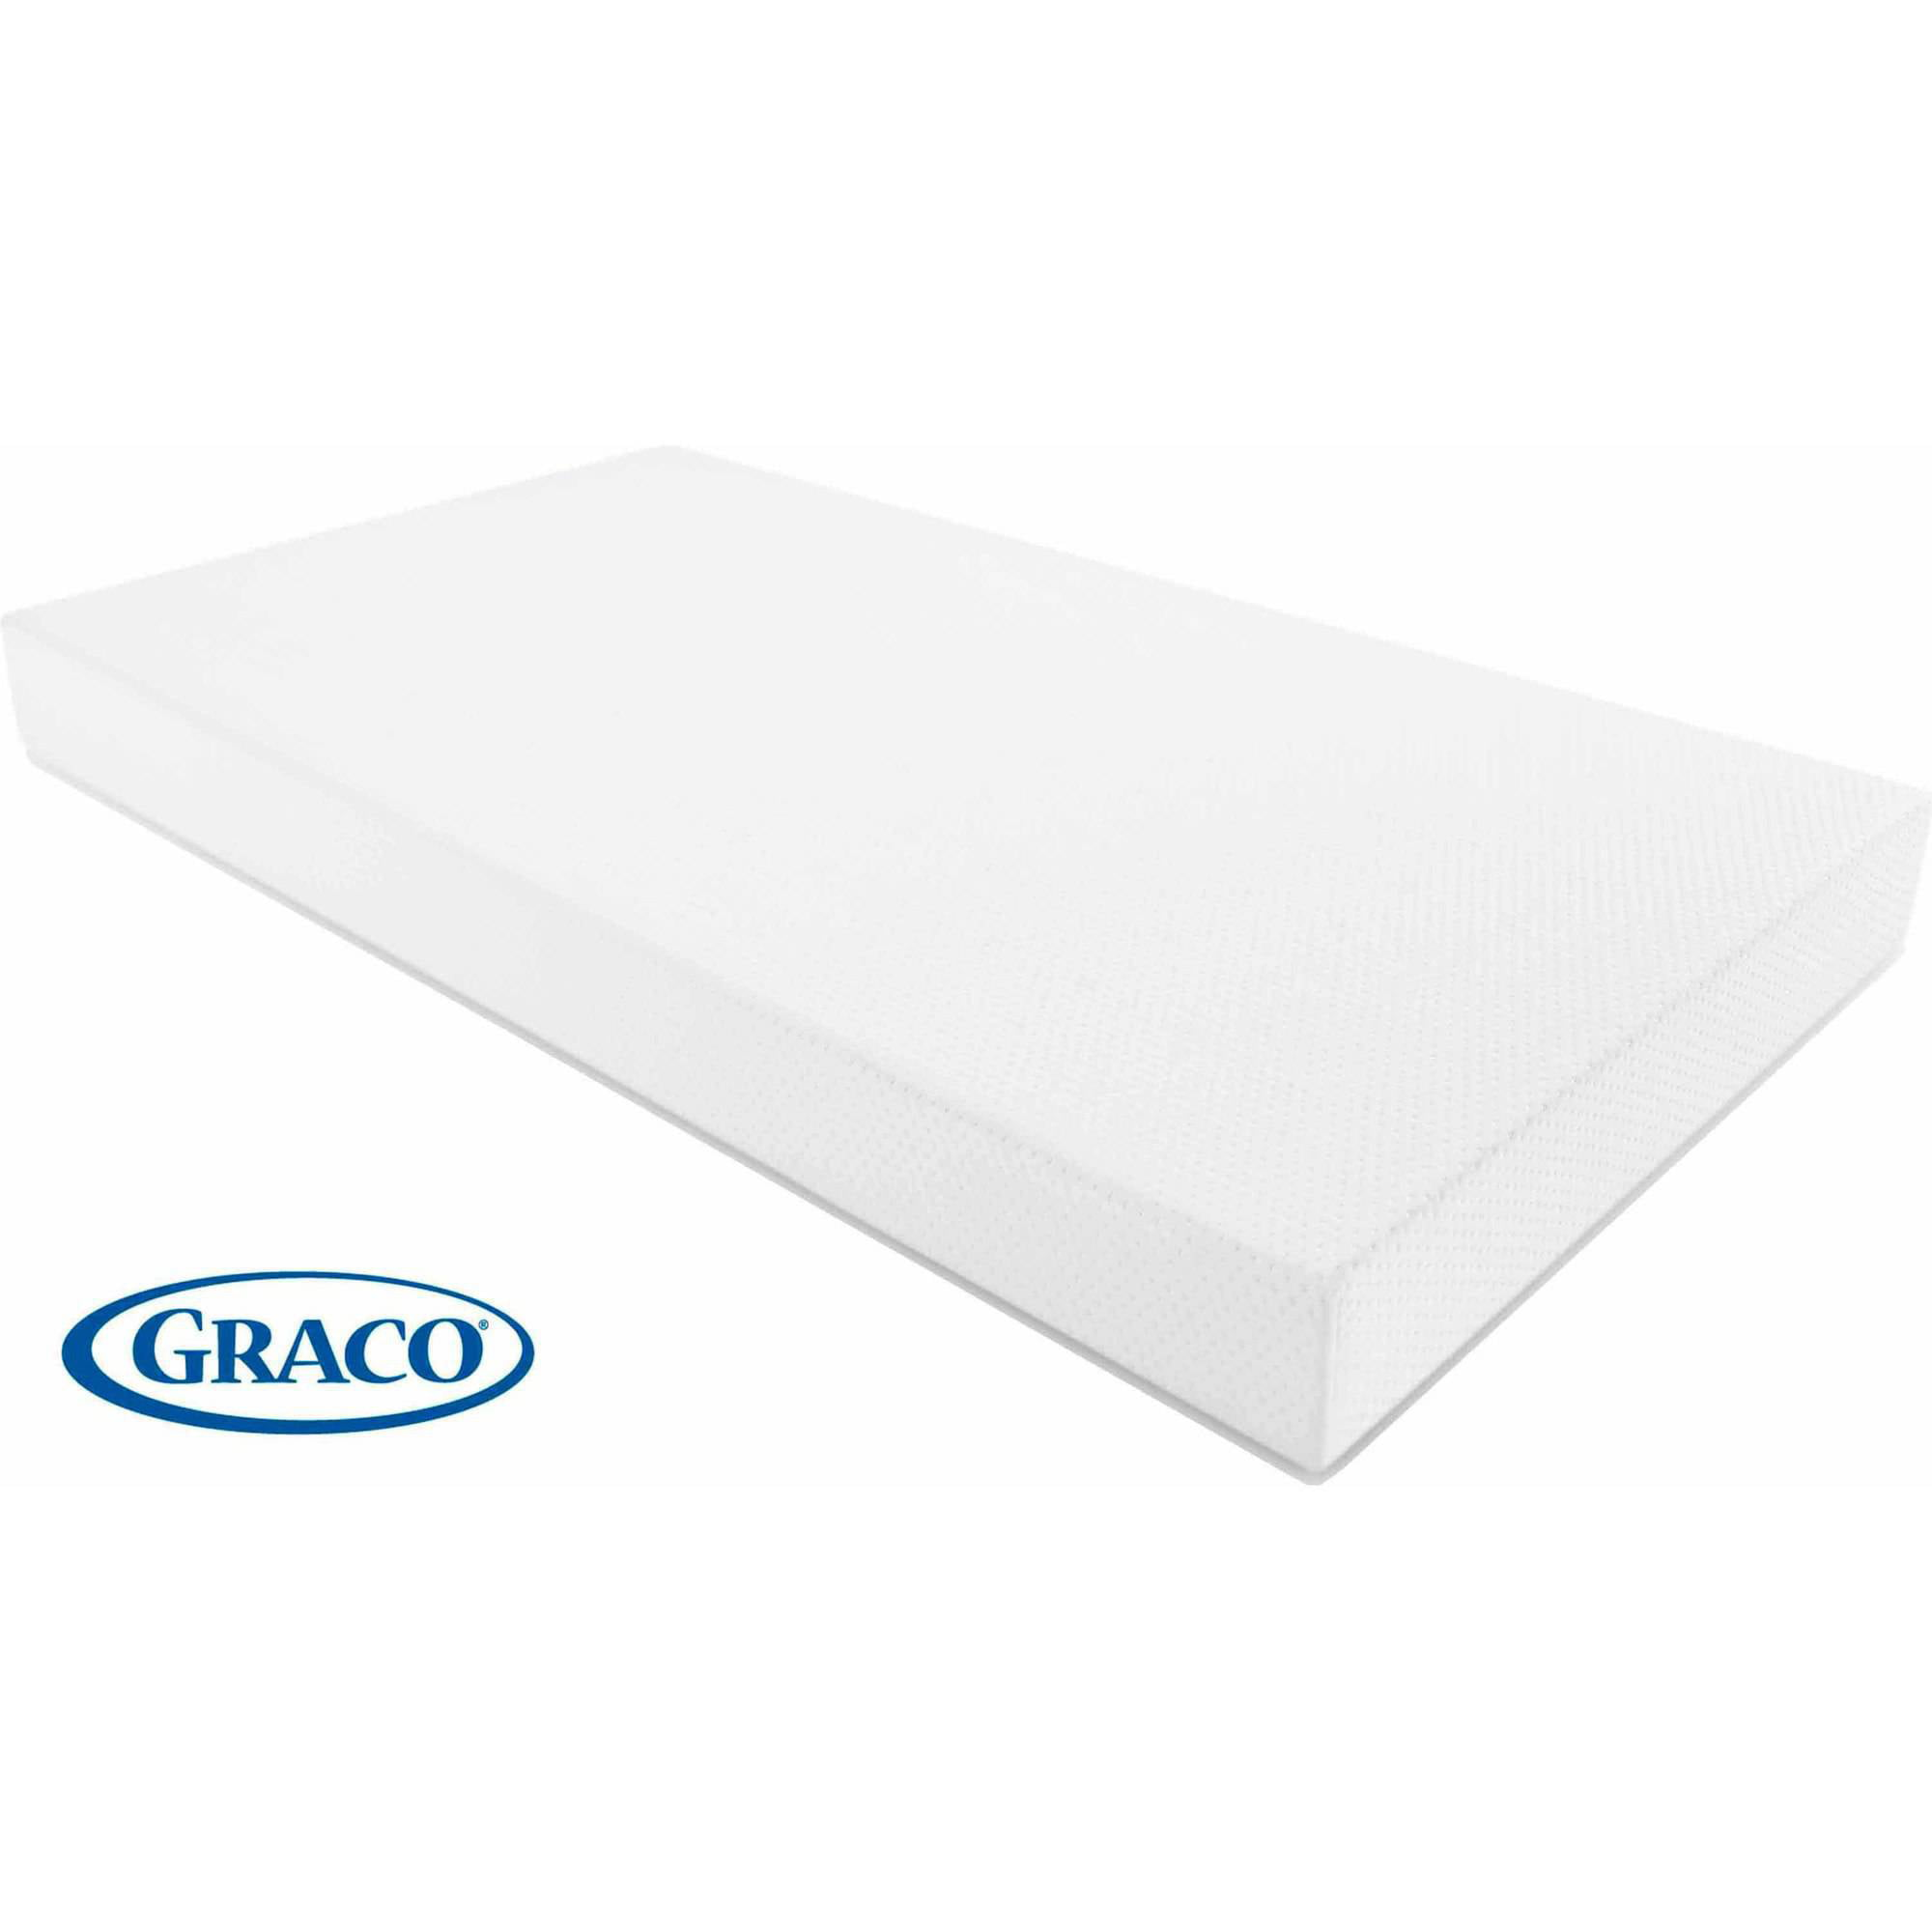 graco premium foam crib and toddler mattress - walmart